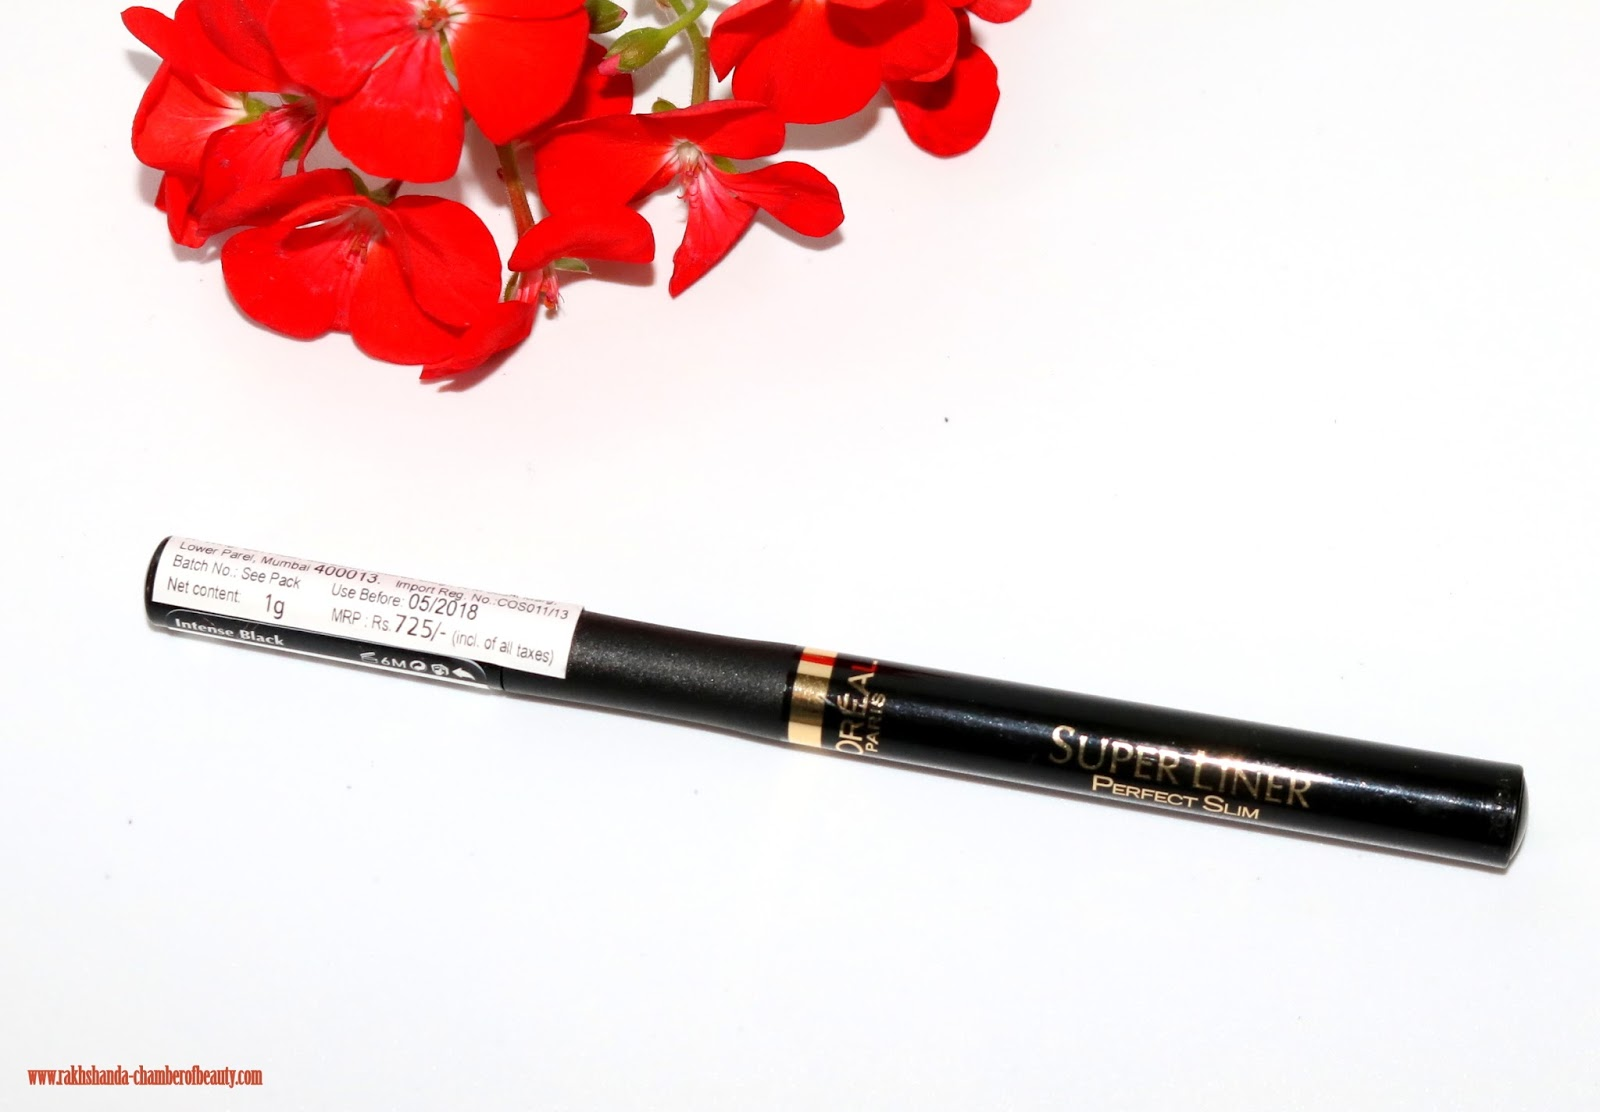 L'Oreal Paris Festive Fever Makeup Products